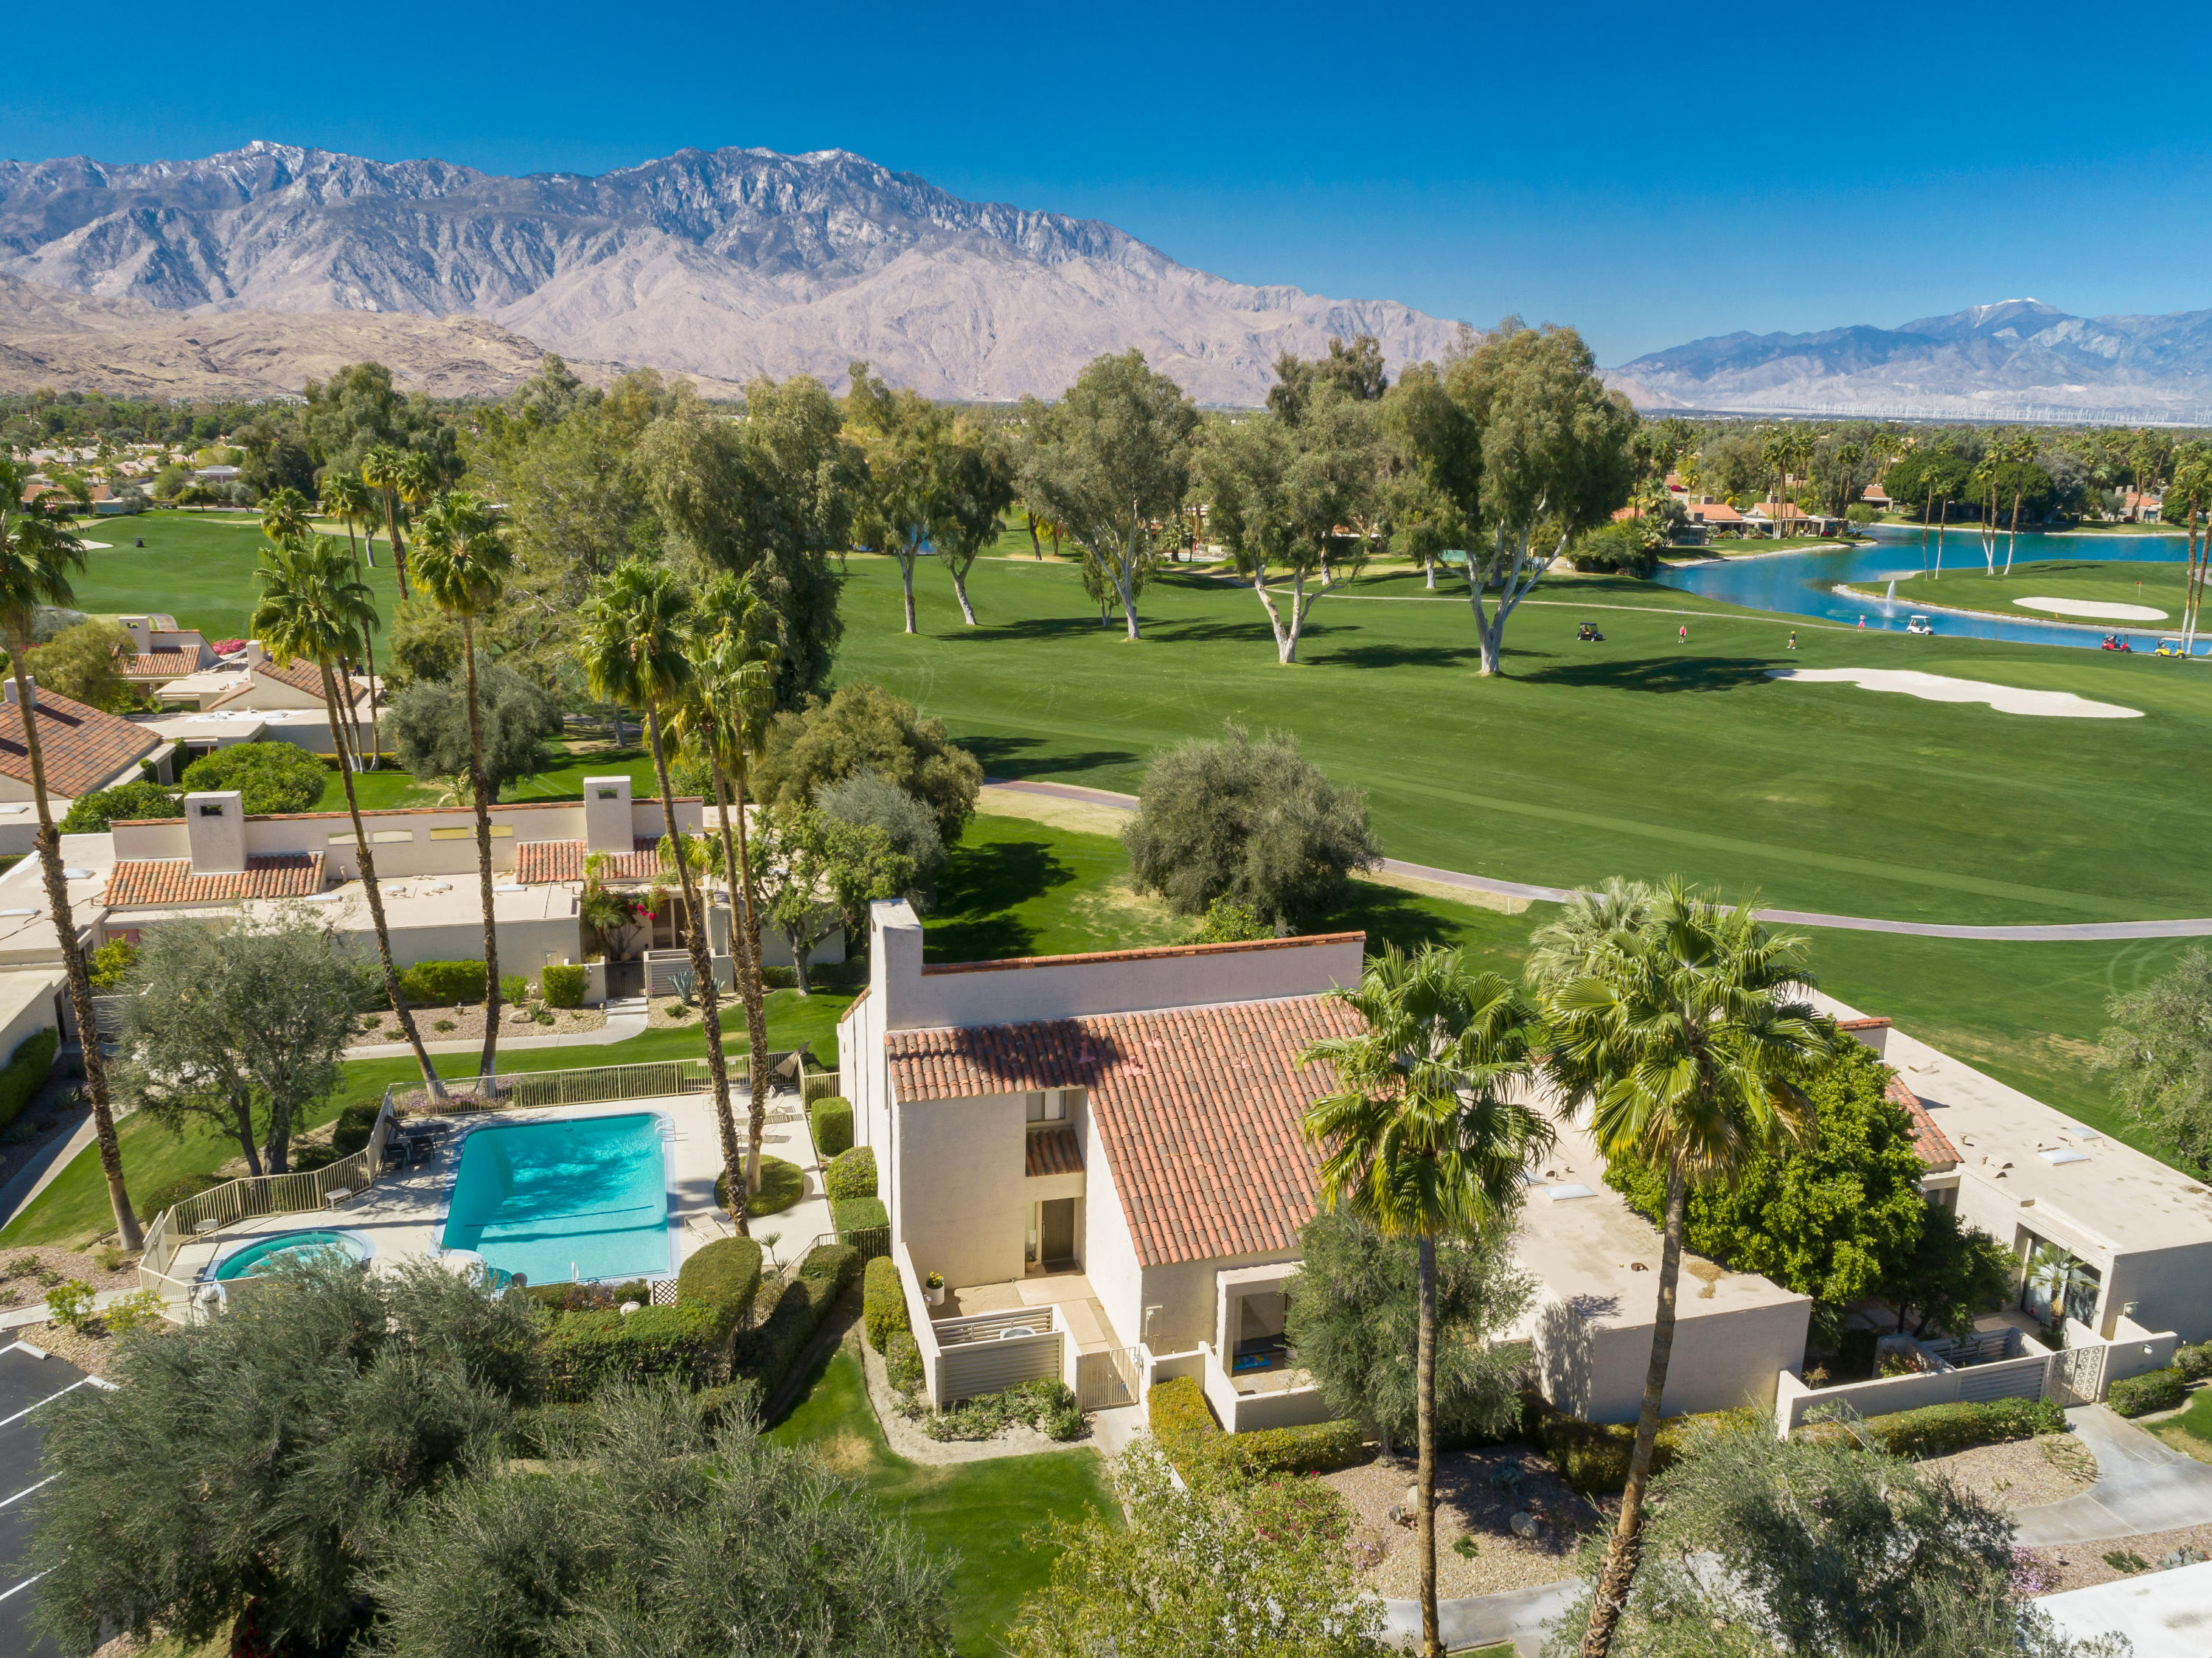 Exquisite Mission Hills Country Club condo with majestic panoramic golf and mountain vista views. This two-story residence boasts 2670sqft. of interior living space, including 2 master retreats, a loft/3rd bedroom, multiple balconies, and incredibly attractive voluminous wood-beamed ceilings throughout. The great room features a full wet bar (w/granite counter/backsplash), tile-encased fireplace, track lighting, plush carpet and large picture window bringing in ample natural light. Adjacent is the dining area, w/buffet counter/cabinets, and remodeled Chef's kitchen including stainless appliances, refaced cabinetry, newer wine fridge, recessed lighting, slab granite counters w/bullnose edging, island bar seating, washer/dryer cavity, custom gas range hood and built-in microwave. The downstairs master opens to the front courtyard, and en suite bath has dual vanity, w/brushed nickel faucets, all new sink valves, spacious tiled shower, separate tub and ample closet space. Both floors have newer HVAC units and upstairs includes the convenient loft/3rd bedroom and nearby upstairs master with shower over tub, dual vanity and balcony with excellent views. The community pool/spa is literally steps away. Fantastic proximity to the LPGA's ANA Inspiration event, golf's first major tournament of the year. Mission Hills C.C. is centrally located to the renowned Eisenhower Medical Center, world class restaurants and a plethora of golf courses! Make an appointment for a private tour today.